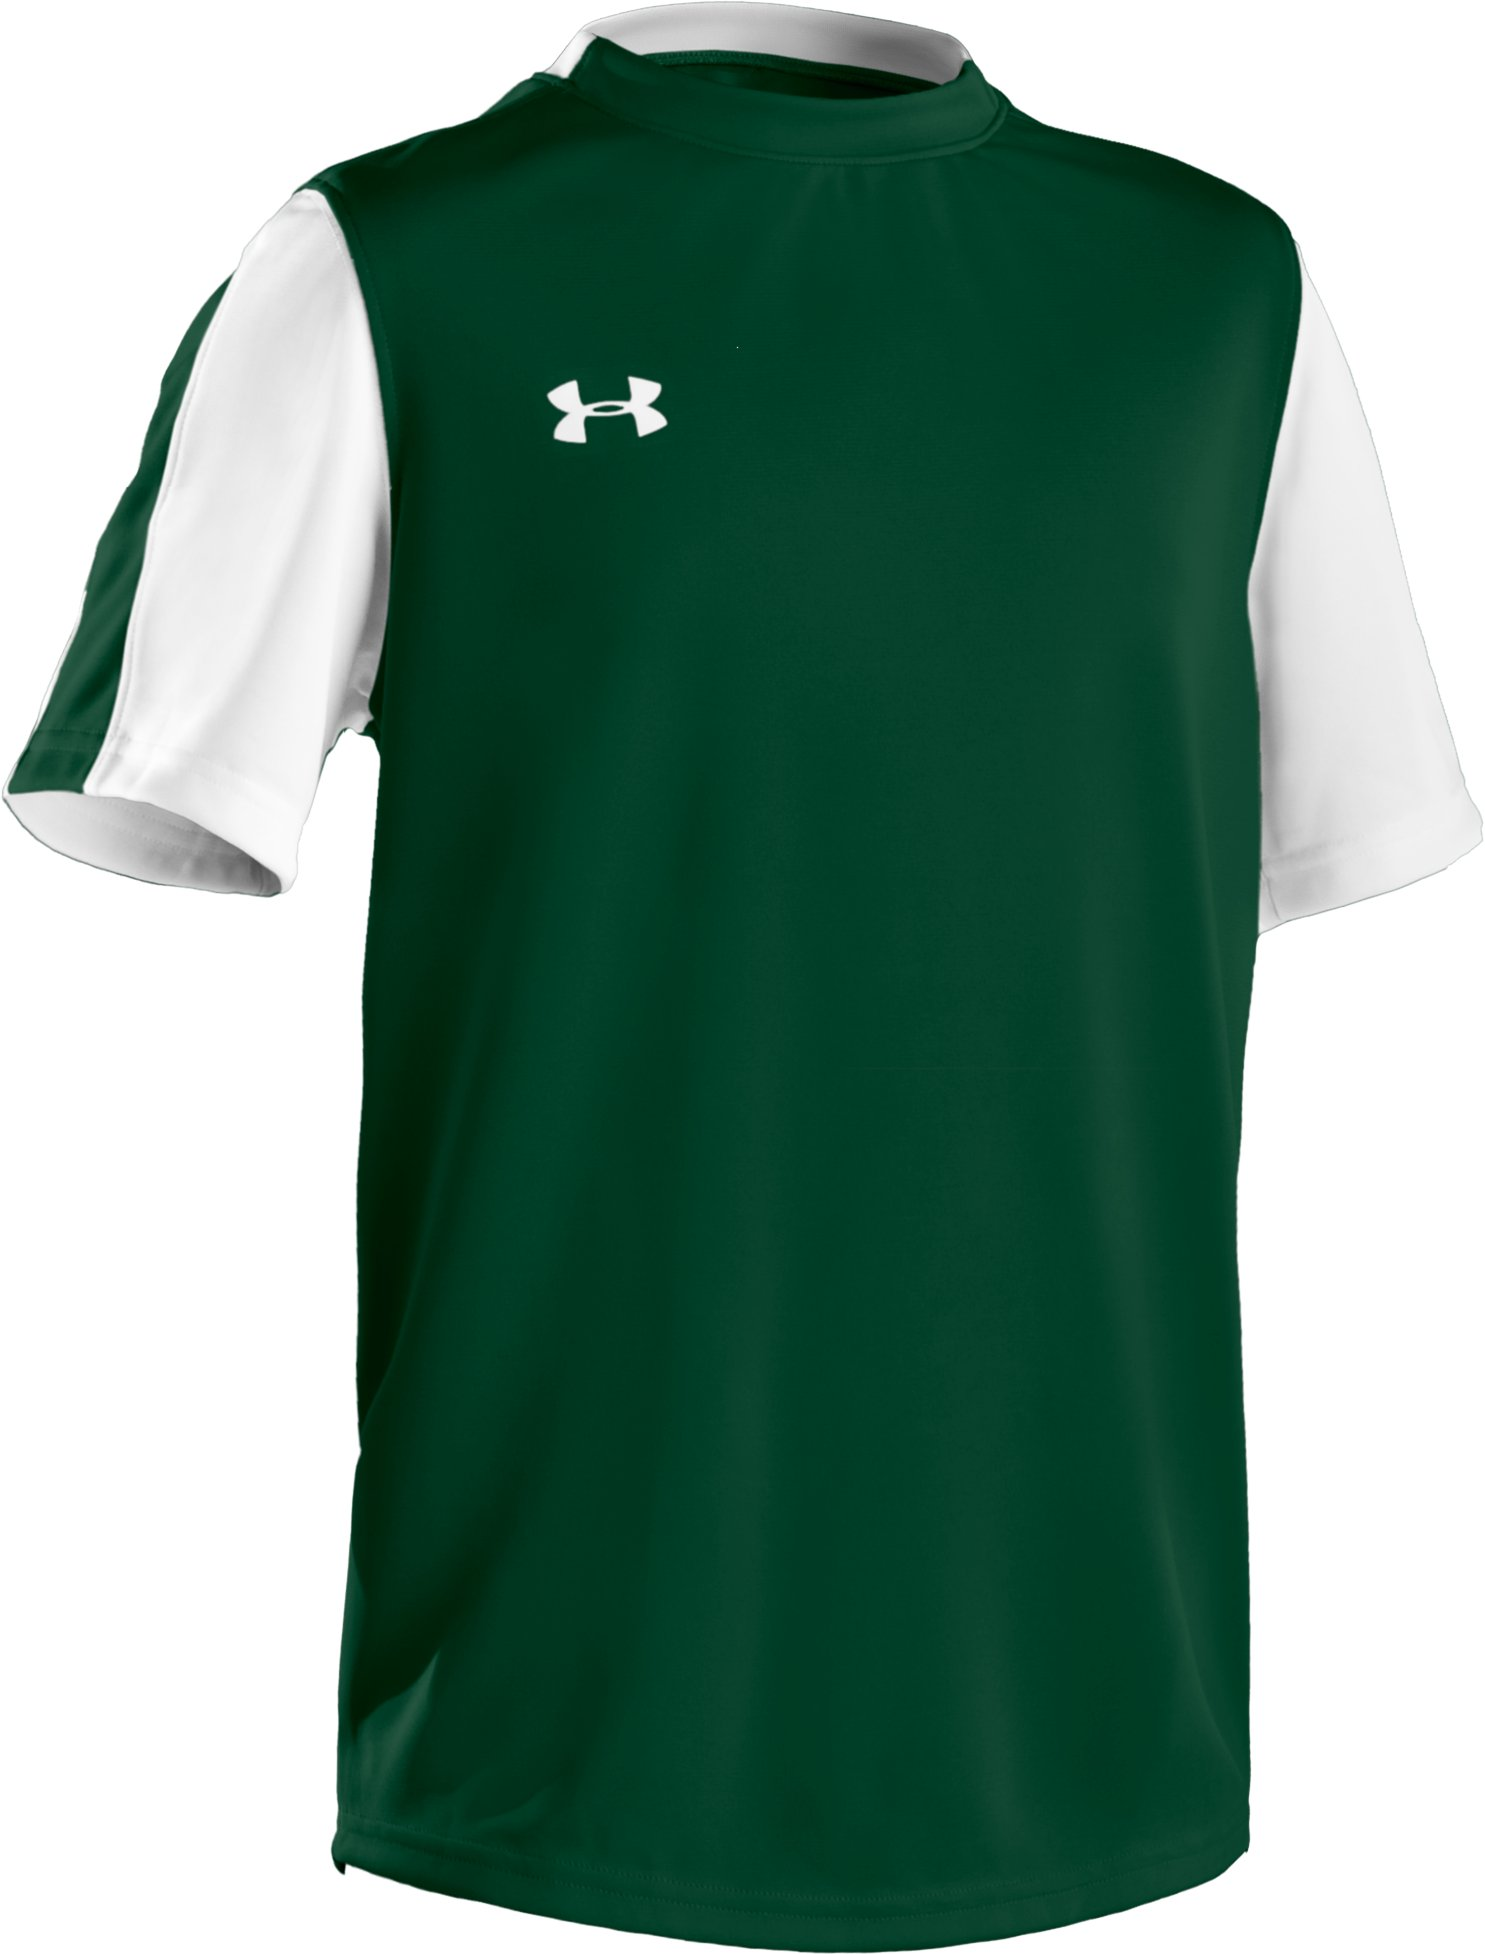 Boys' UA Classic Short Sleeve Jersey, Forest Green